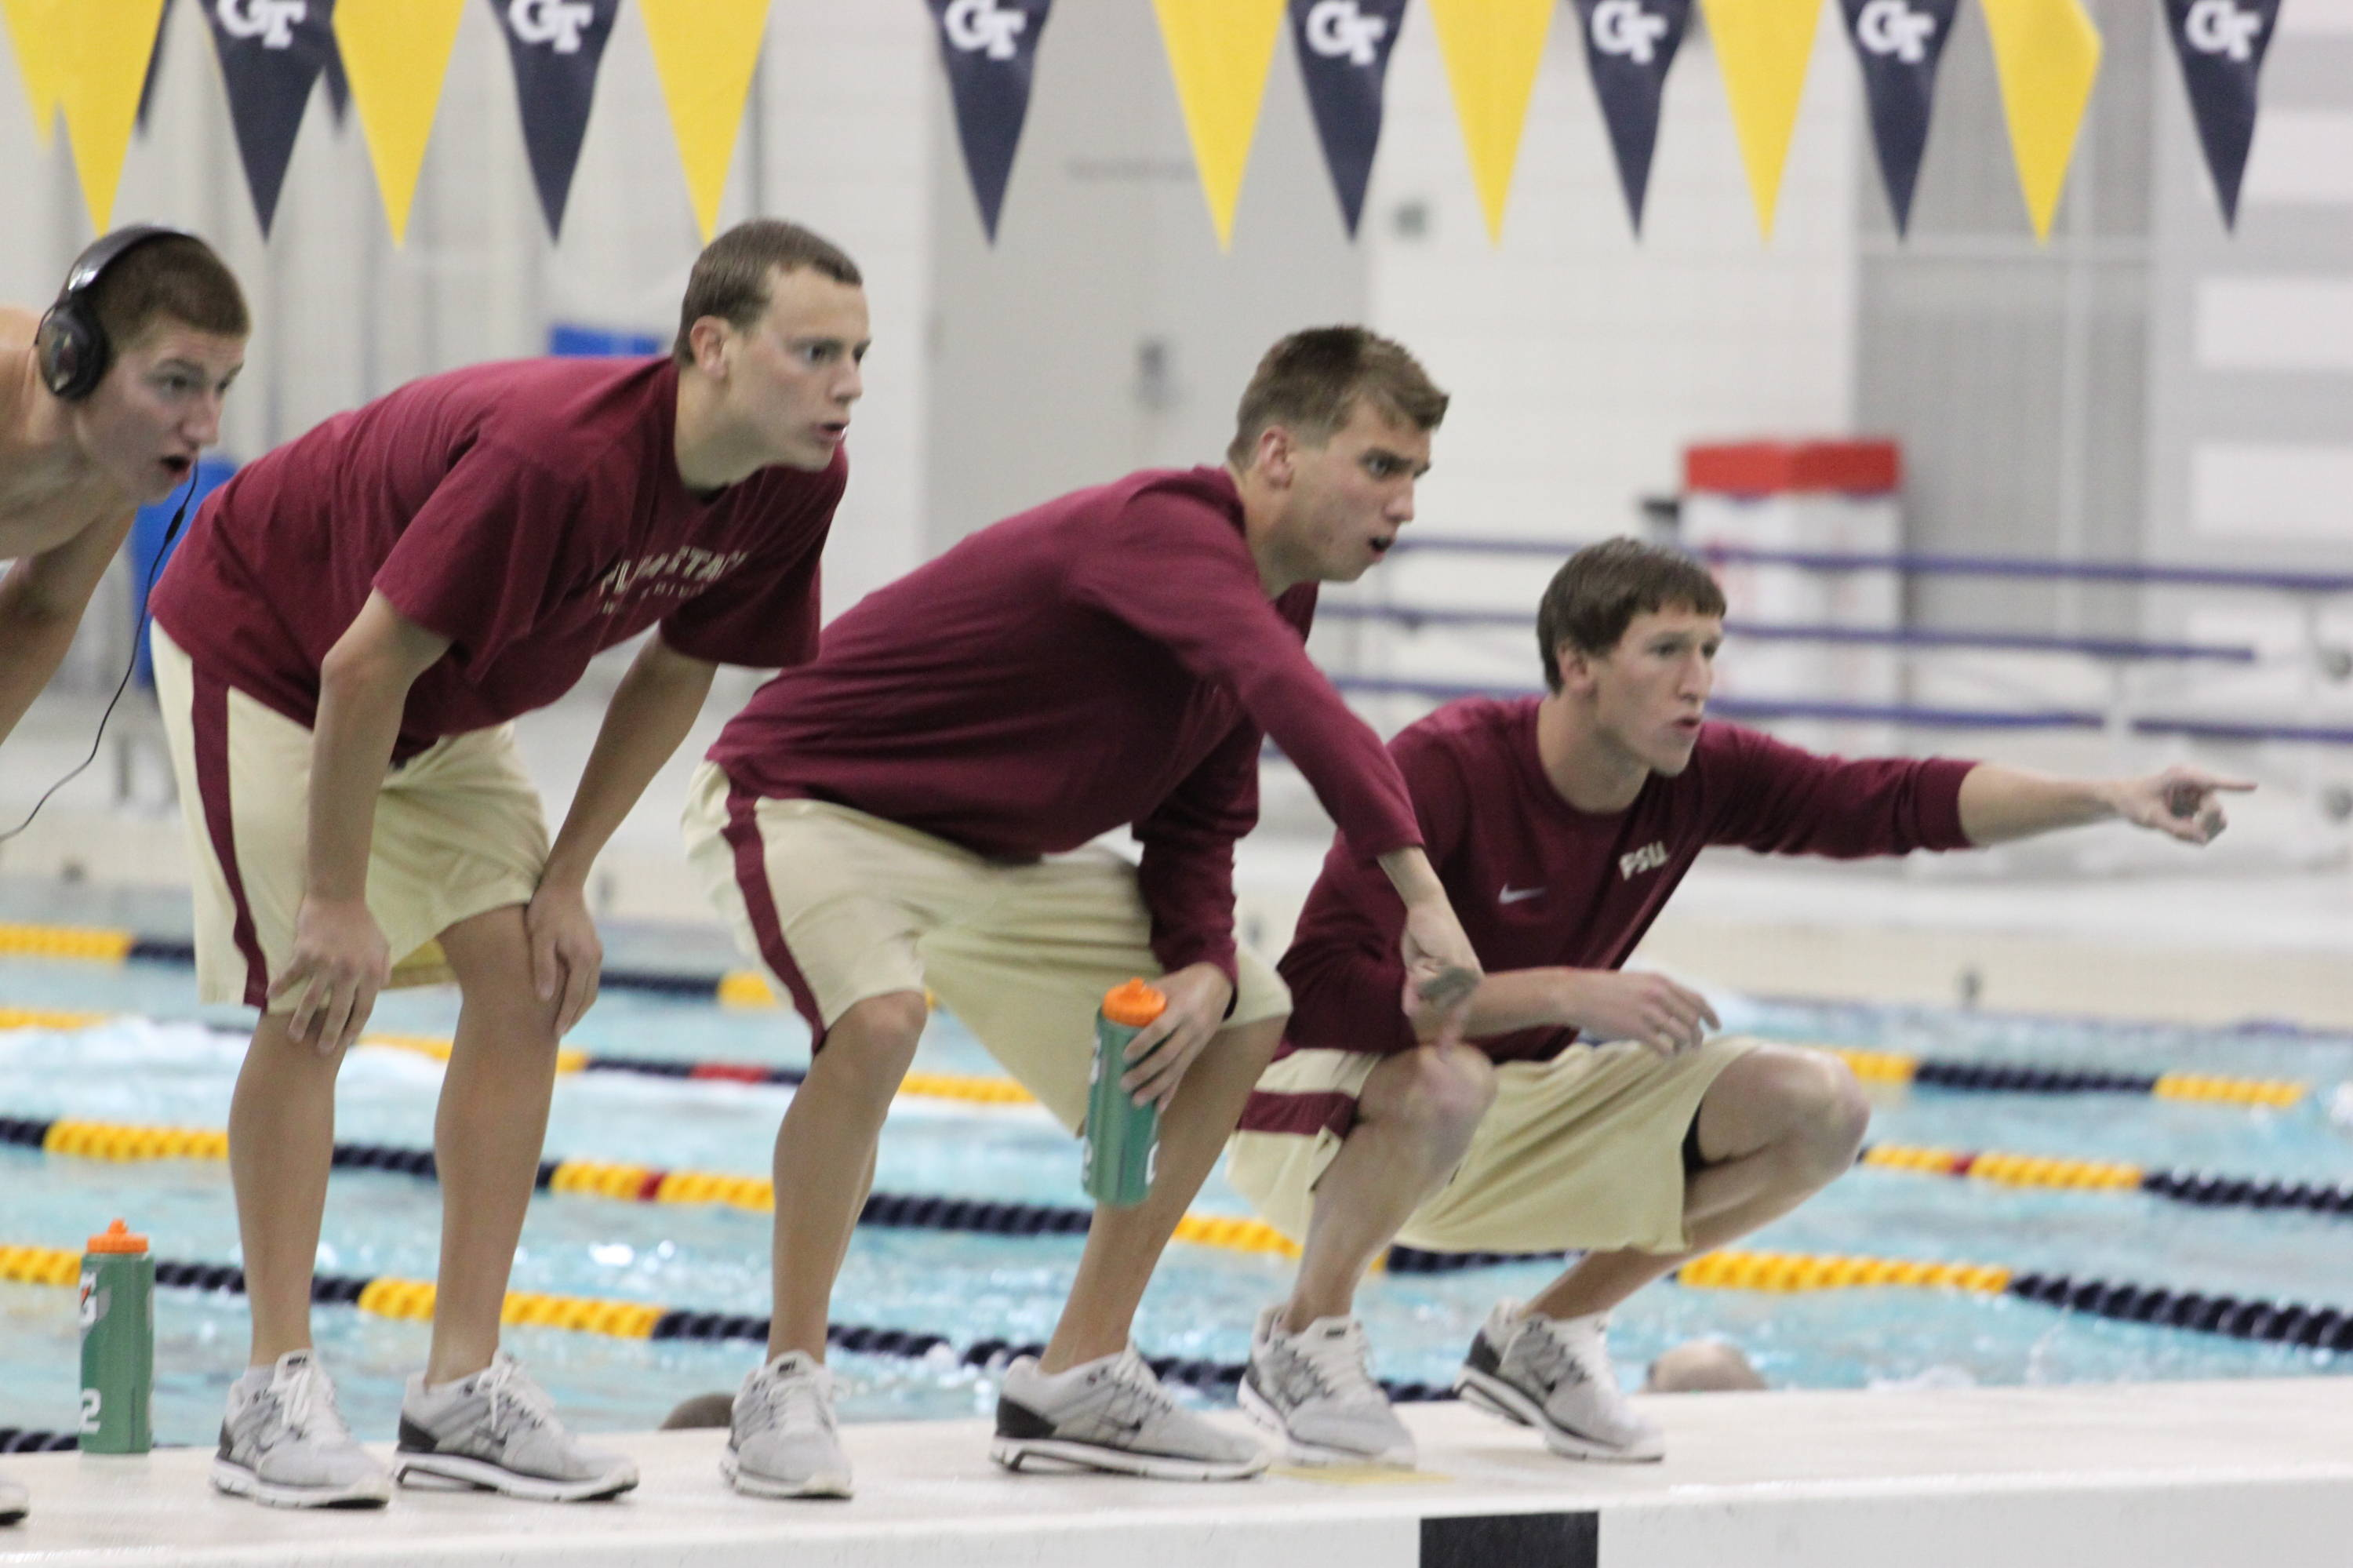 Trice Bailey, Mike Thomas, Paul Murray and Mark Weber cheer on the Seminole swimmers.